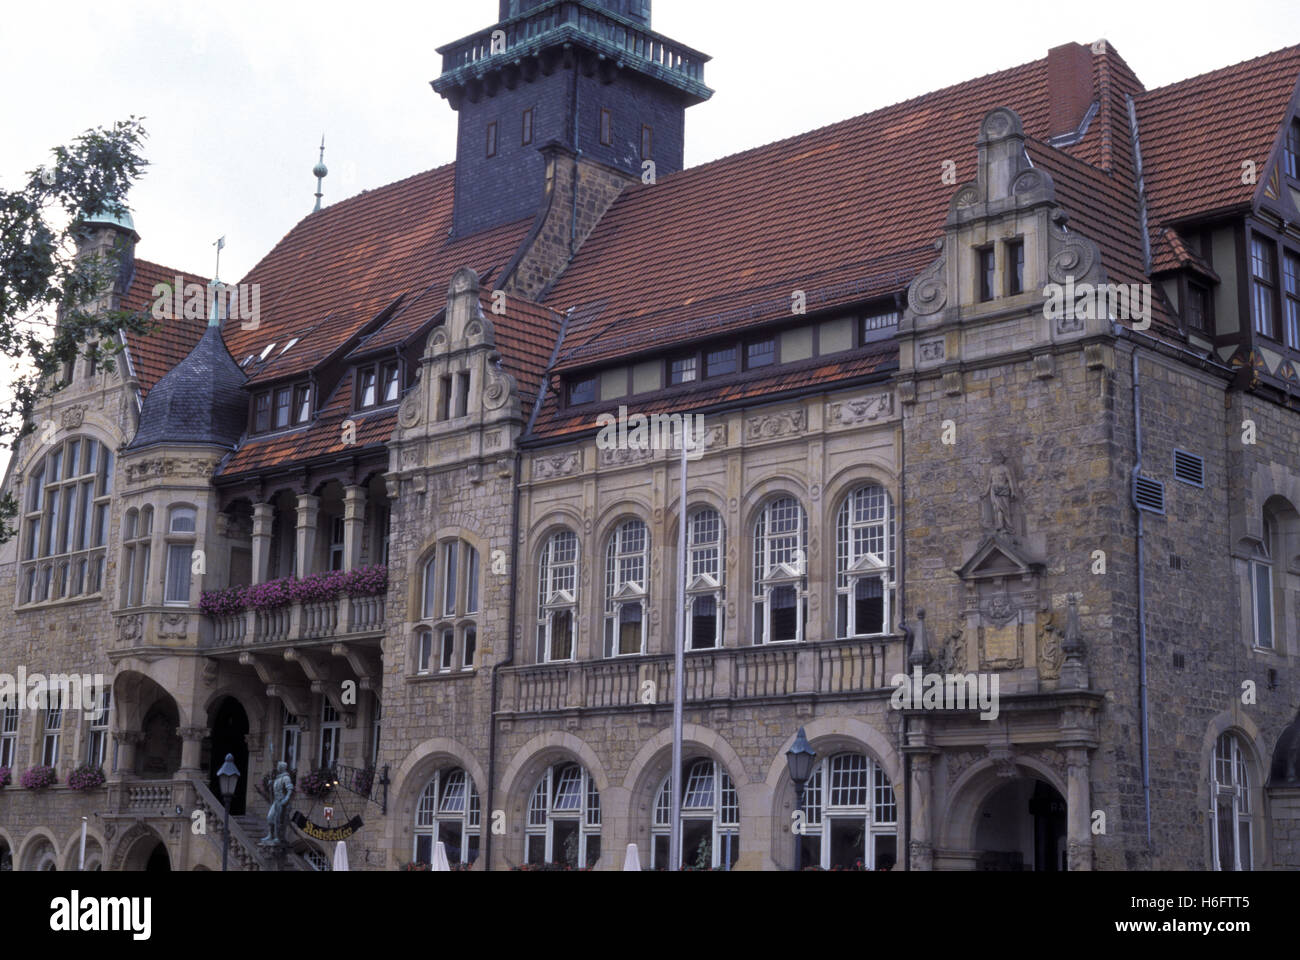 Germany, Lower Saxony, Bueckeburg, the town hall. - Stock Image